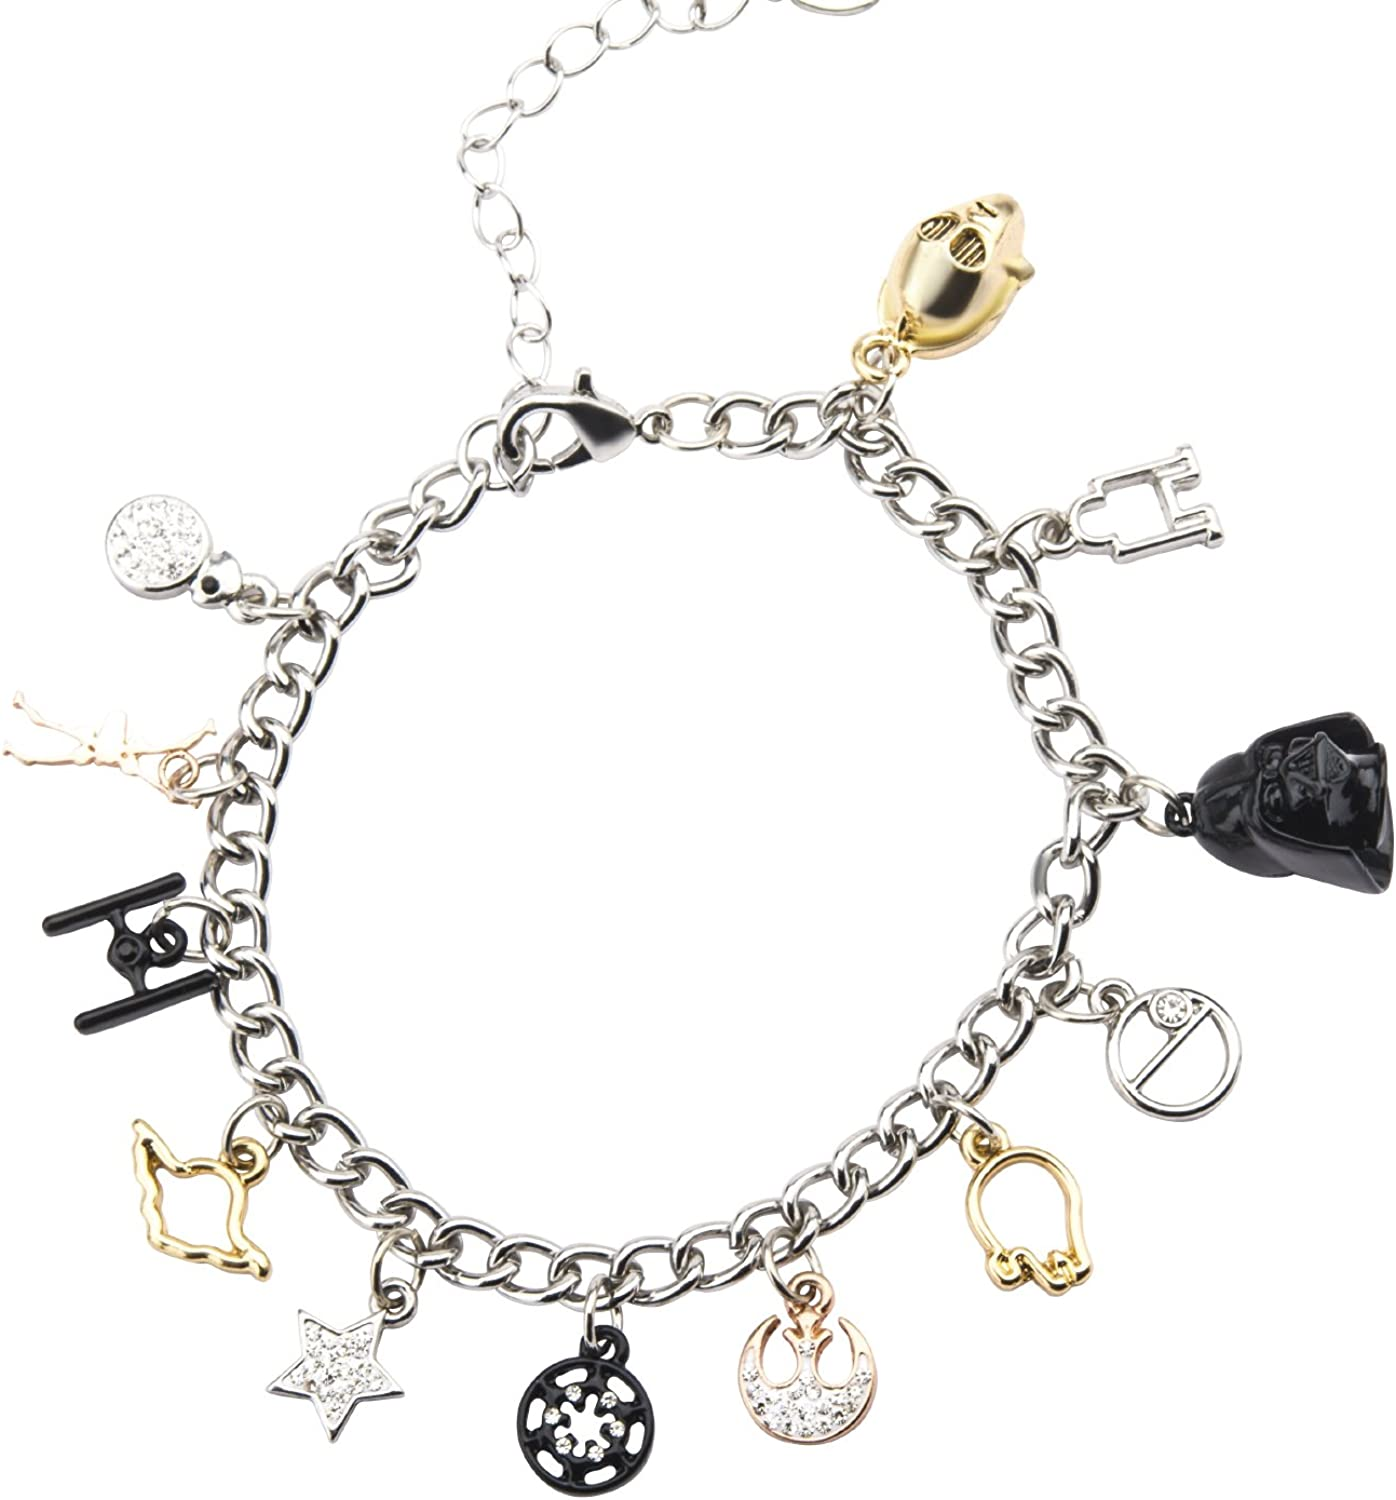 Amazon Com Star Wars Jewelry Men S Multi Charm Stainless Steel Charm Bracelet 7 5 Inch 2 Inch Extender Silver Expandable Jewelry